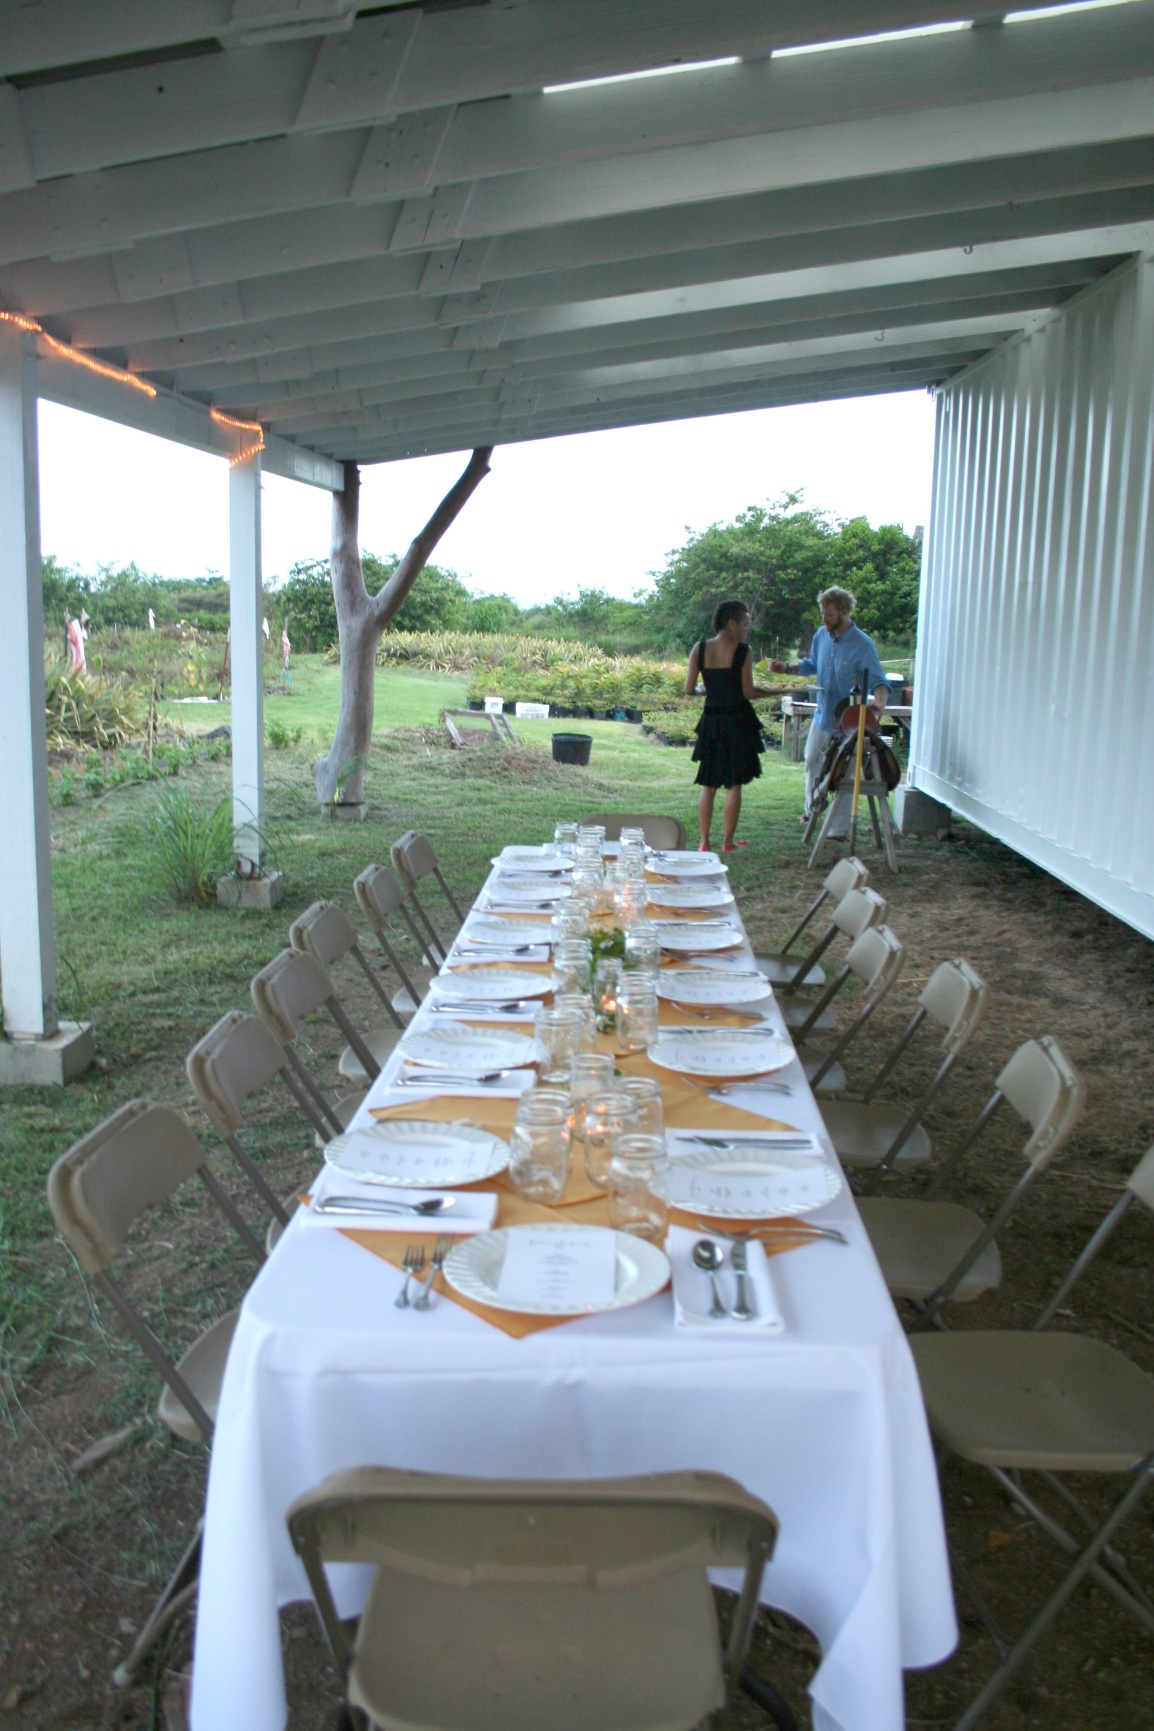 A formally set table for twelve, with flowers and candles, looks elegant under a barn roof overhang at ARTfarm, with pineapple groves in the background and a glimpse of the Caribbean Sea beyond.